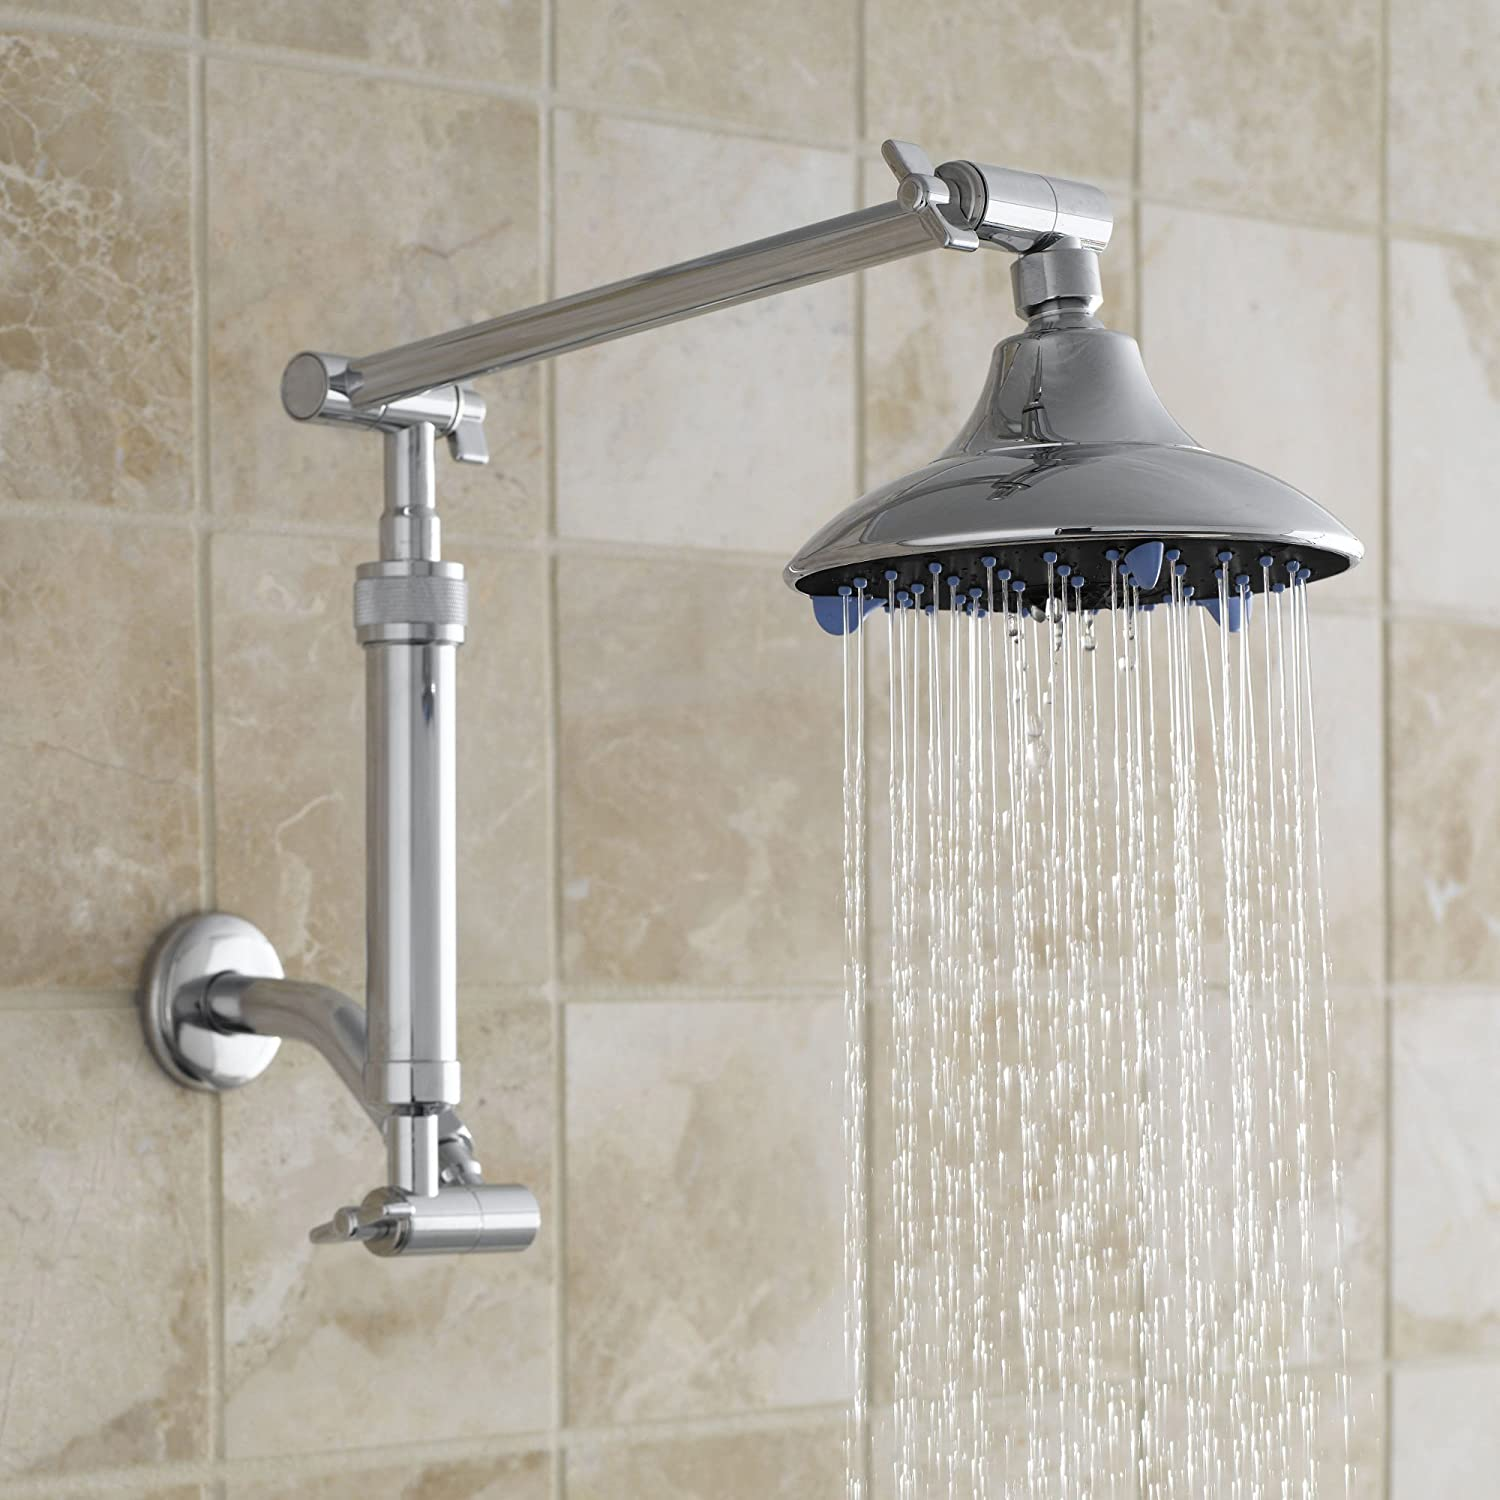 shower filter rejuvenate design water charming c sprite ideas vitamin pretentious head invigorated with ph